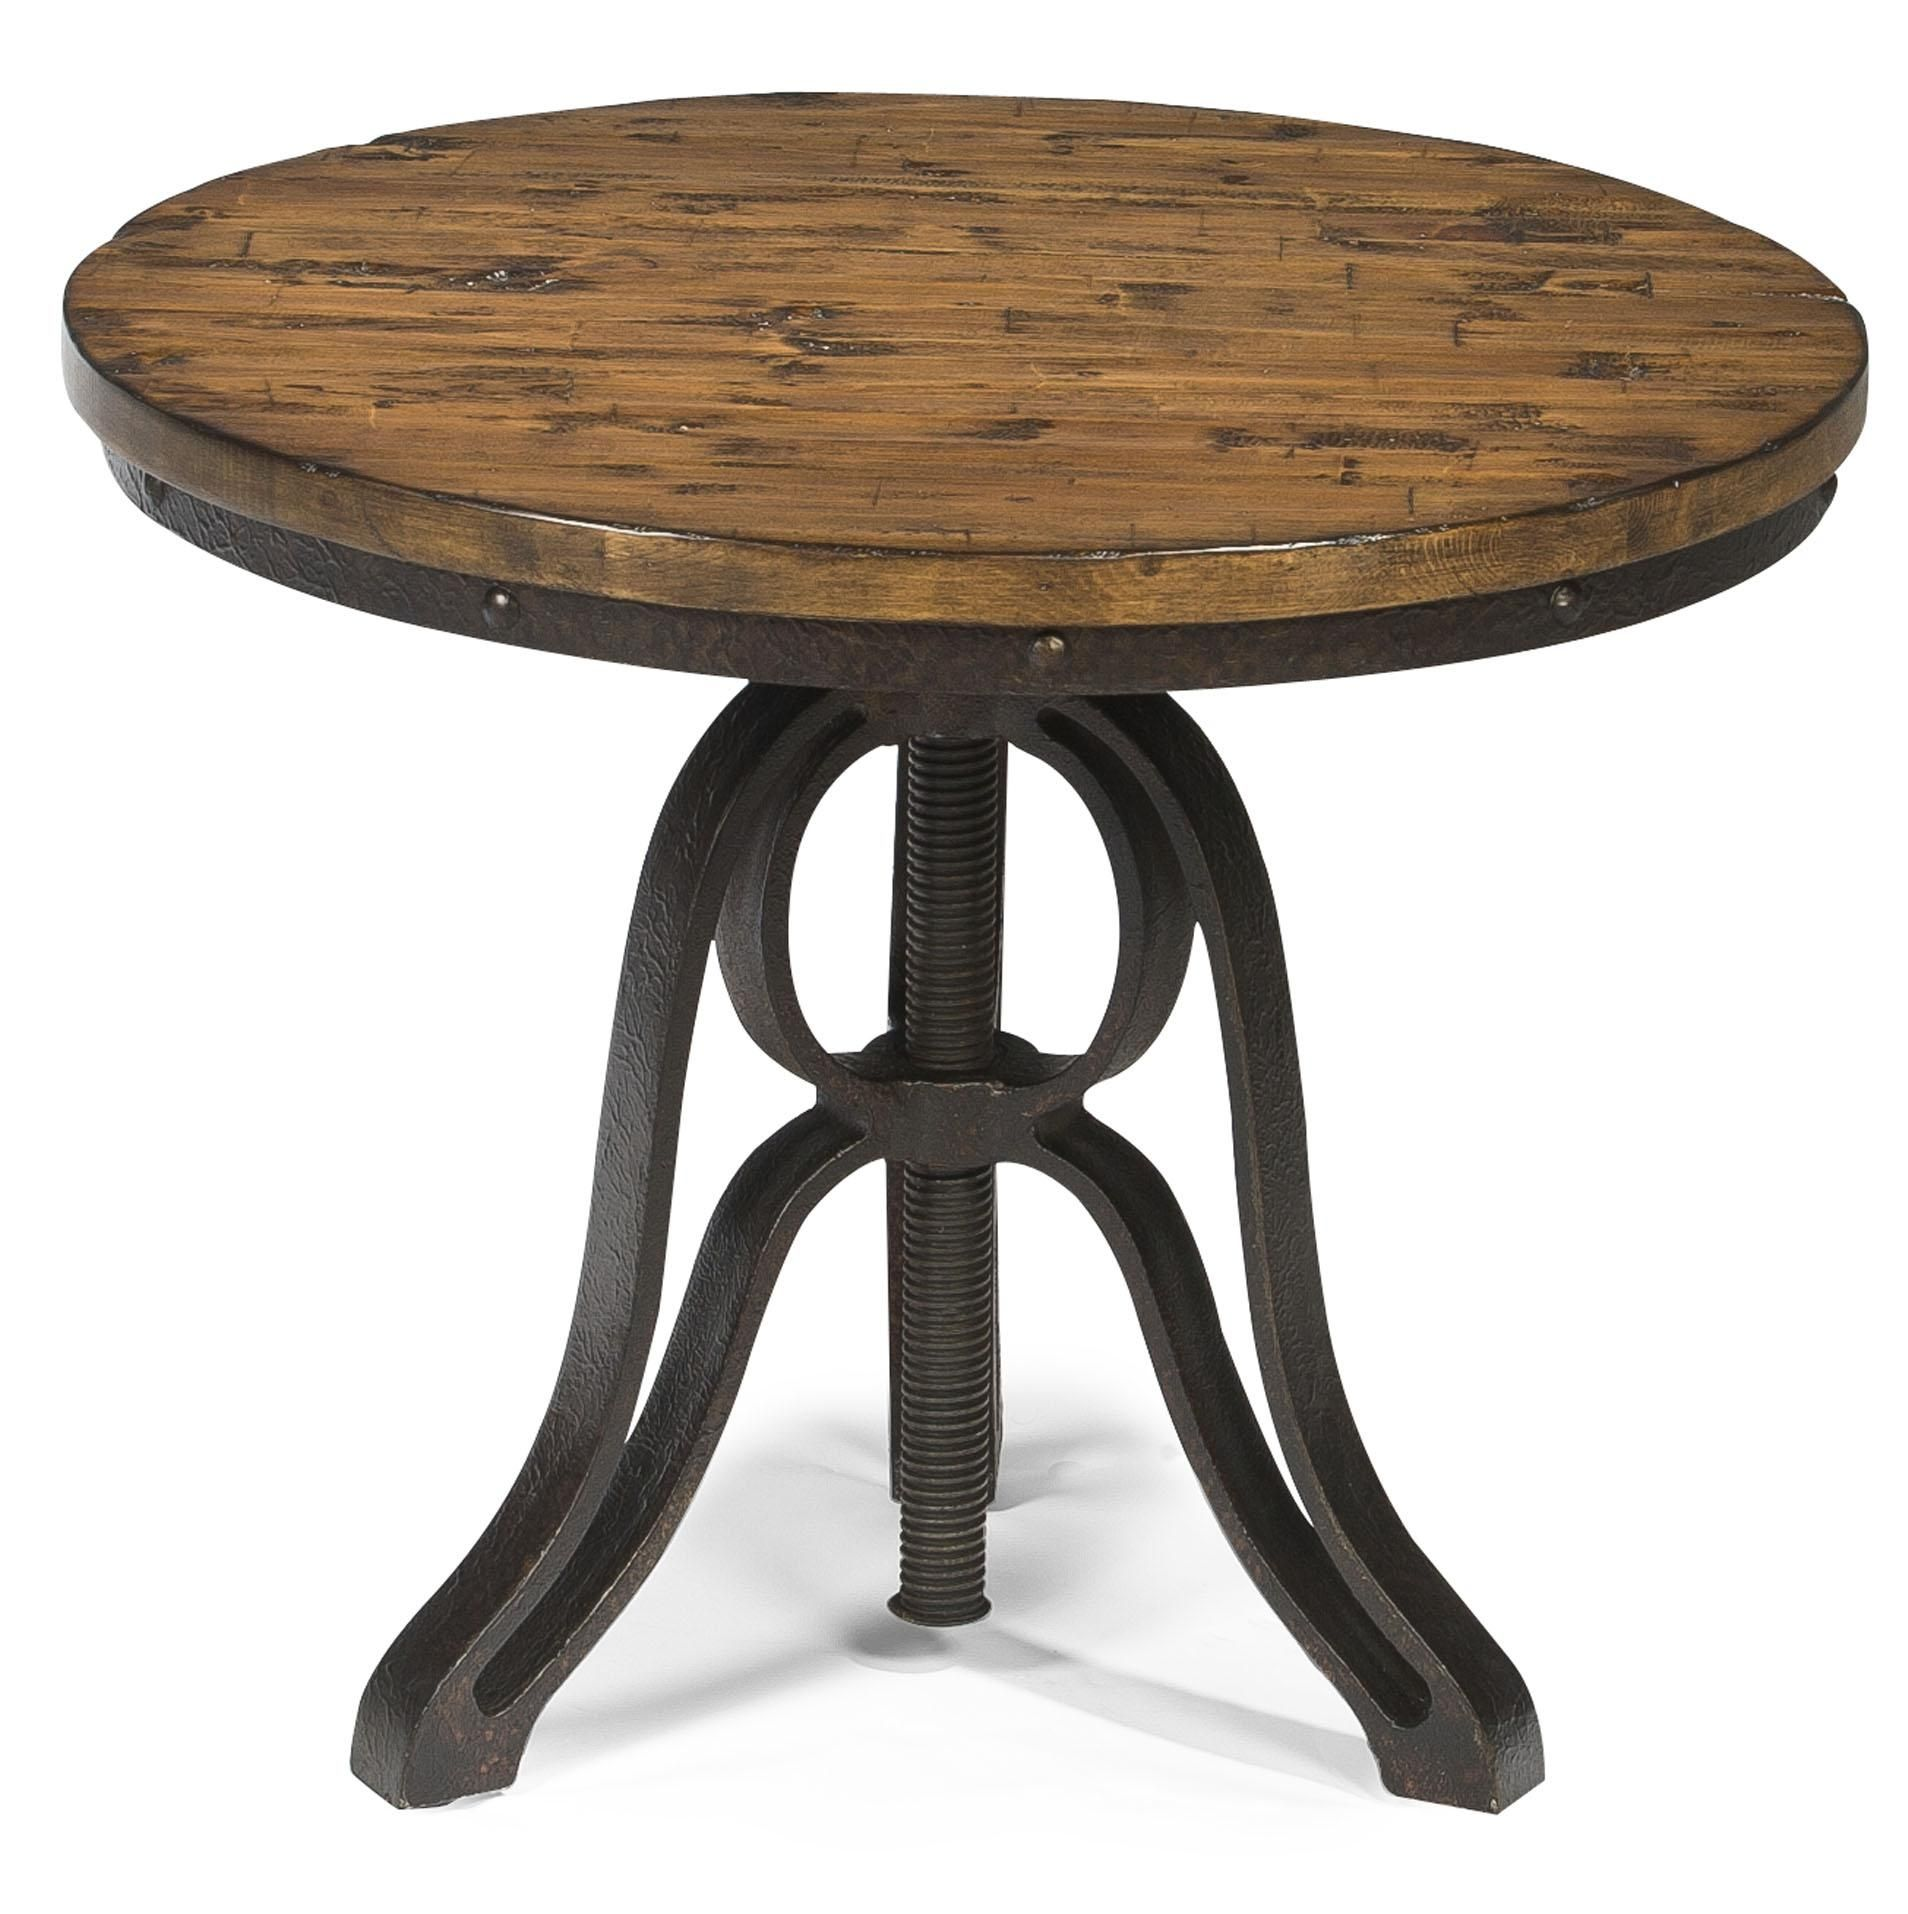 Large Round End Table With Storage Round End Tables Wooden